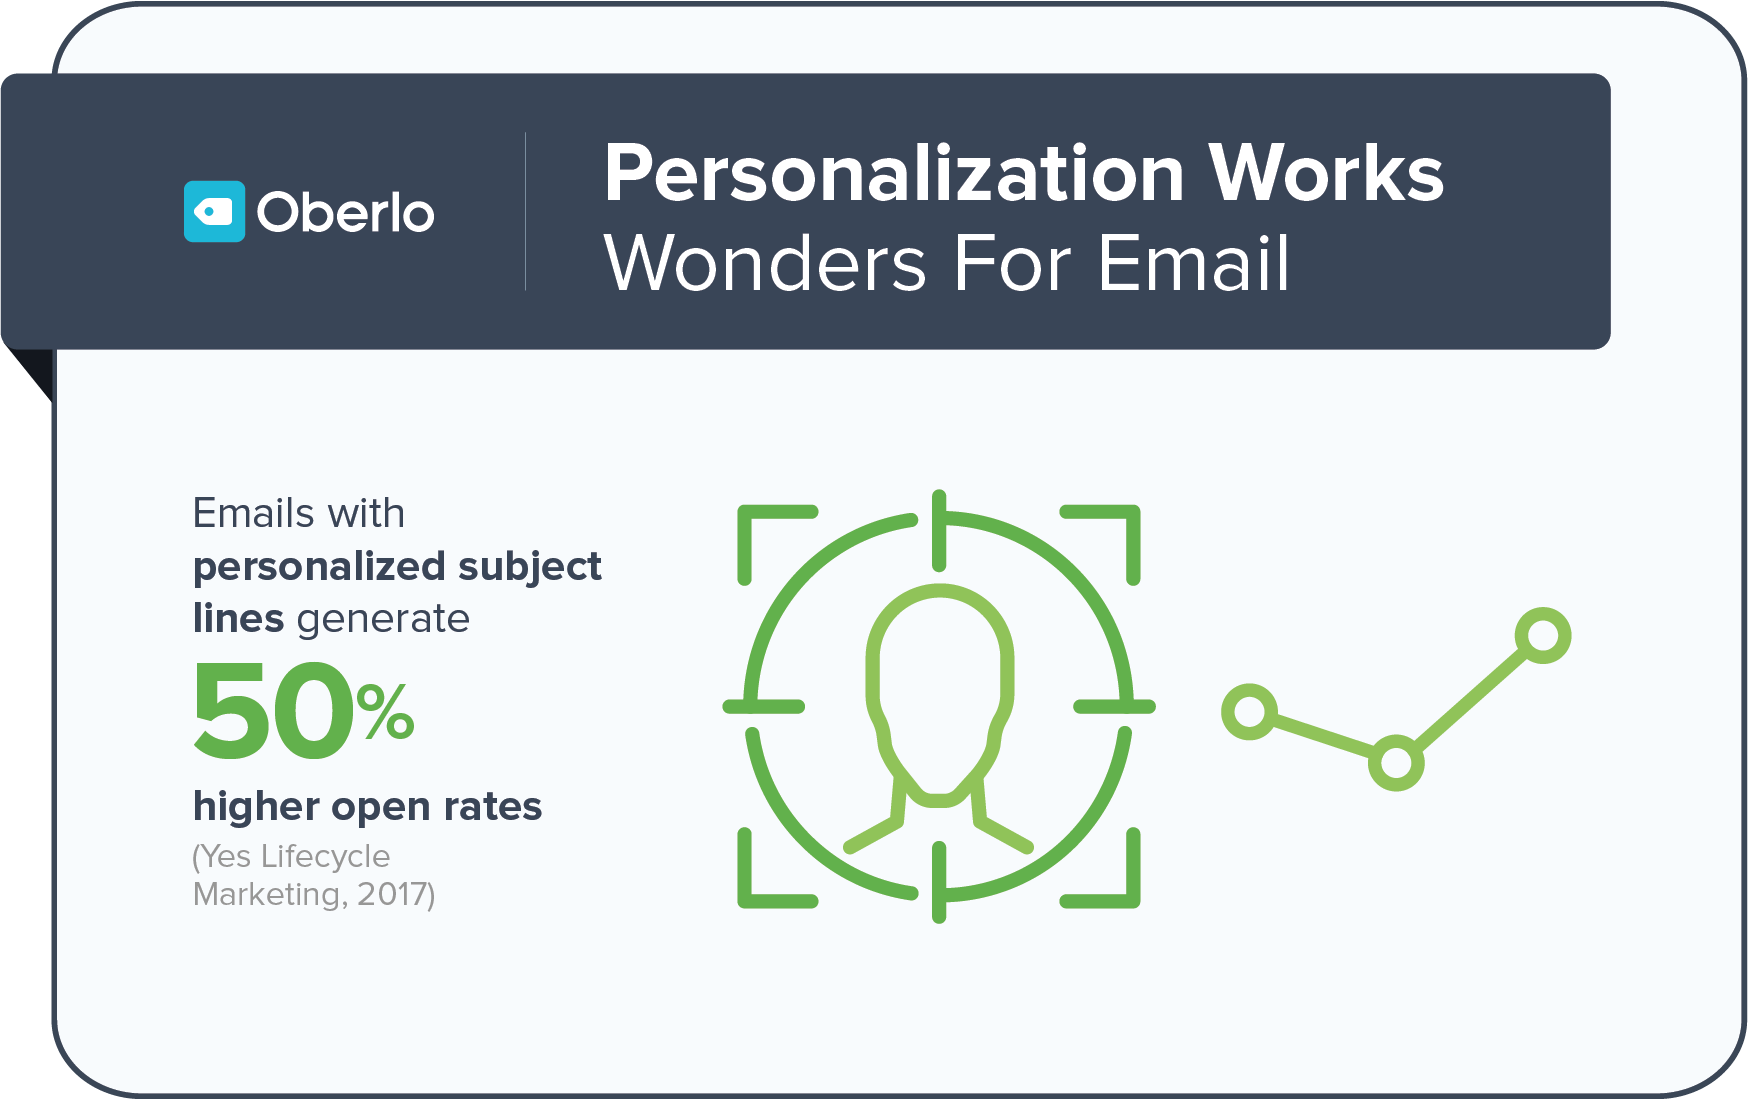 personalization works wonders for emails